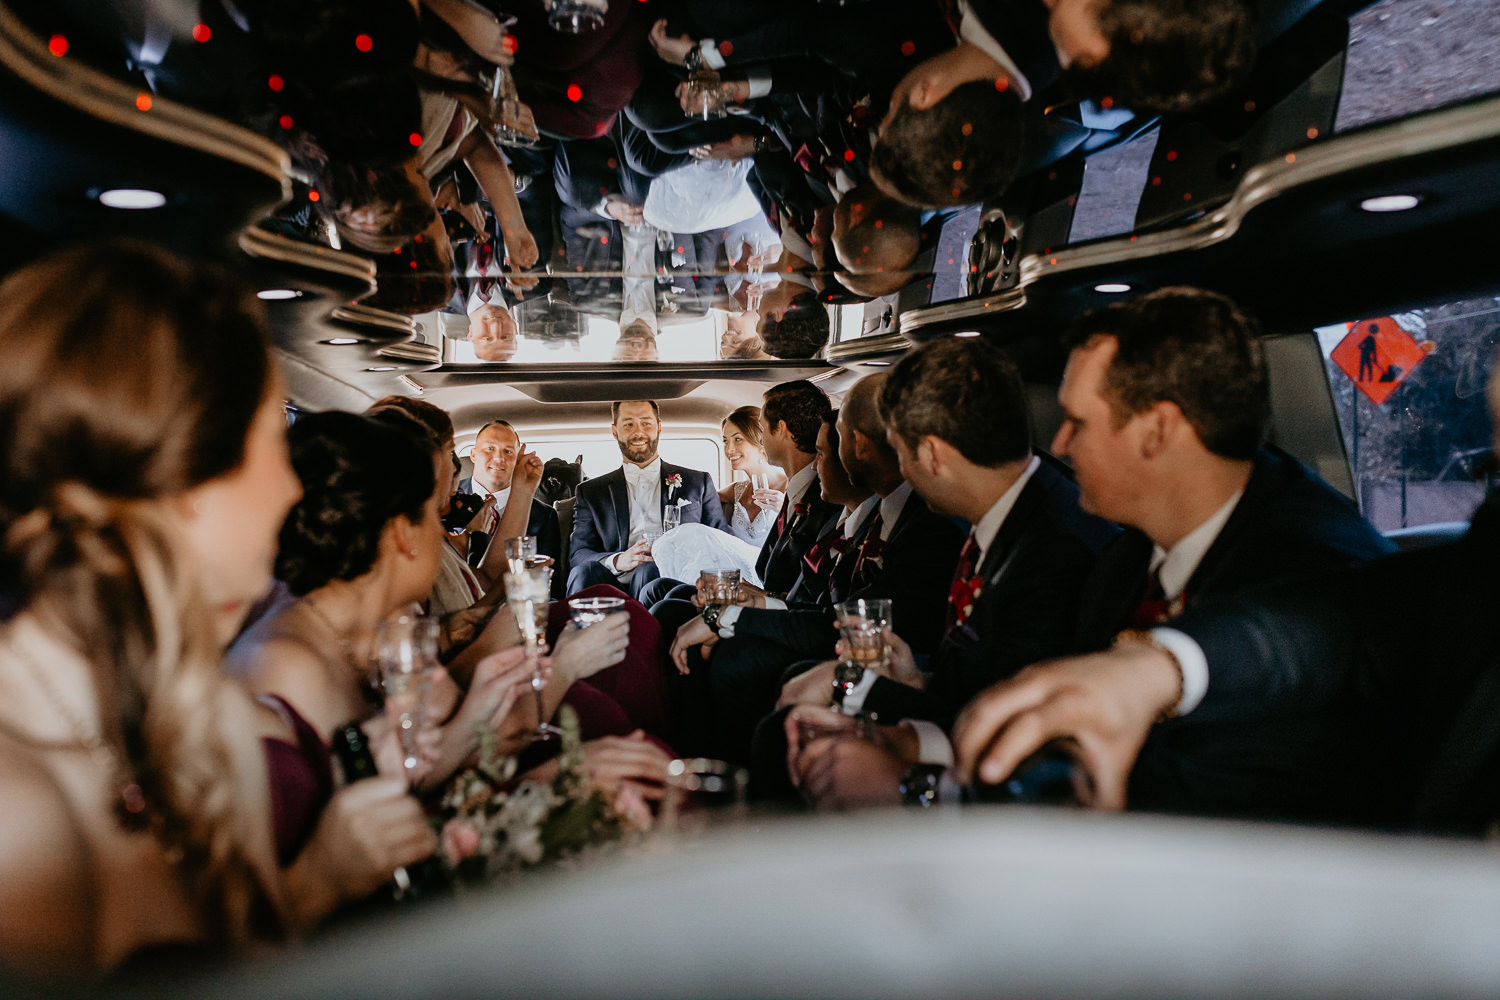 inside the limousine entire bridal party on the sides newlyweds in the middle